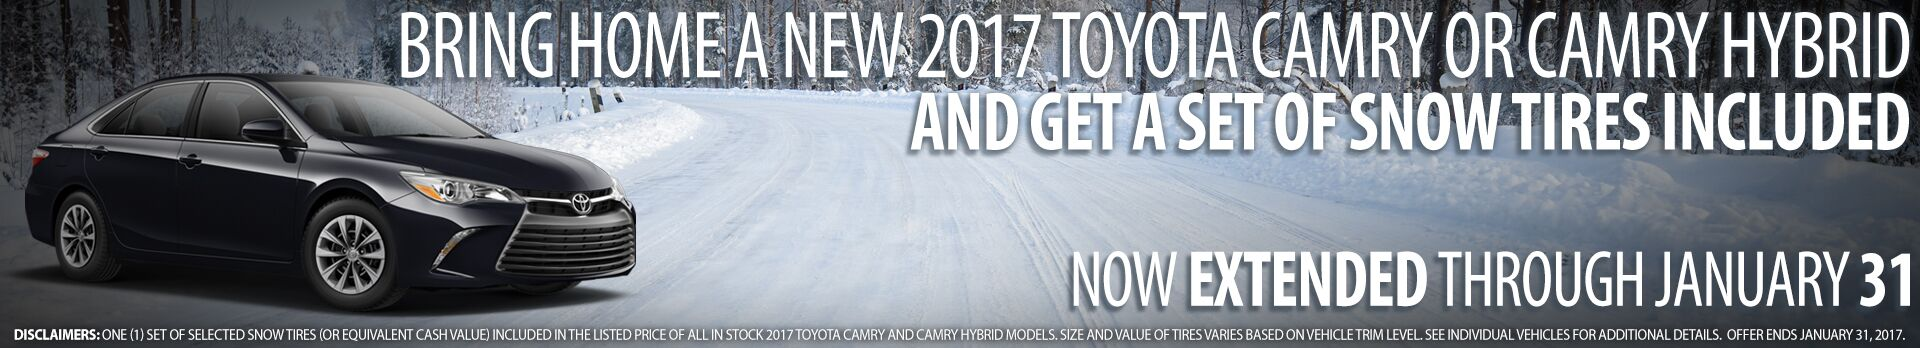 2017 Camry Snow Tires